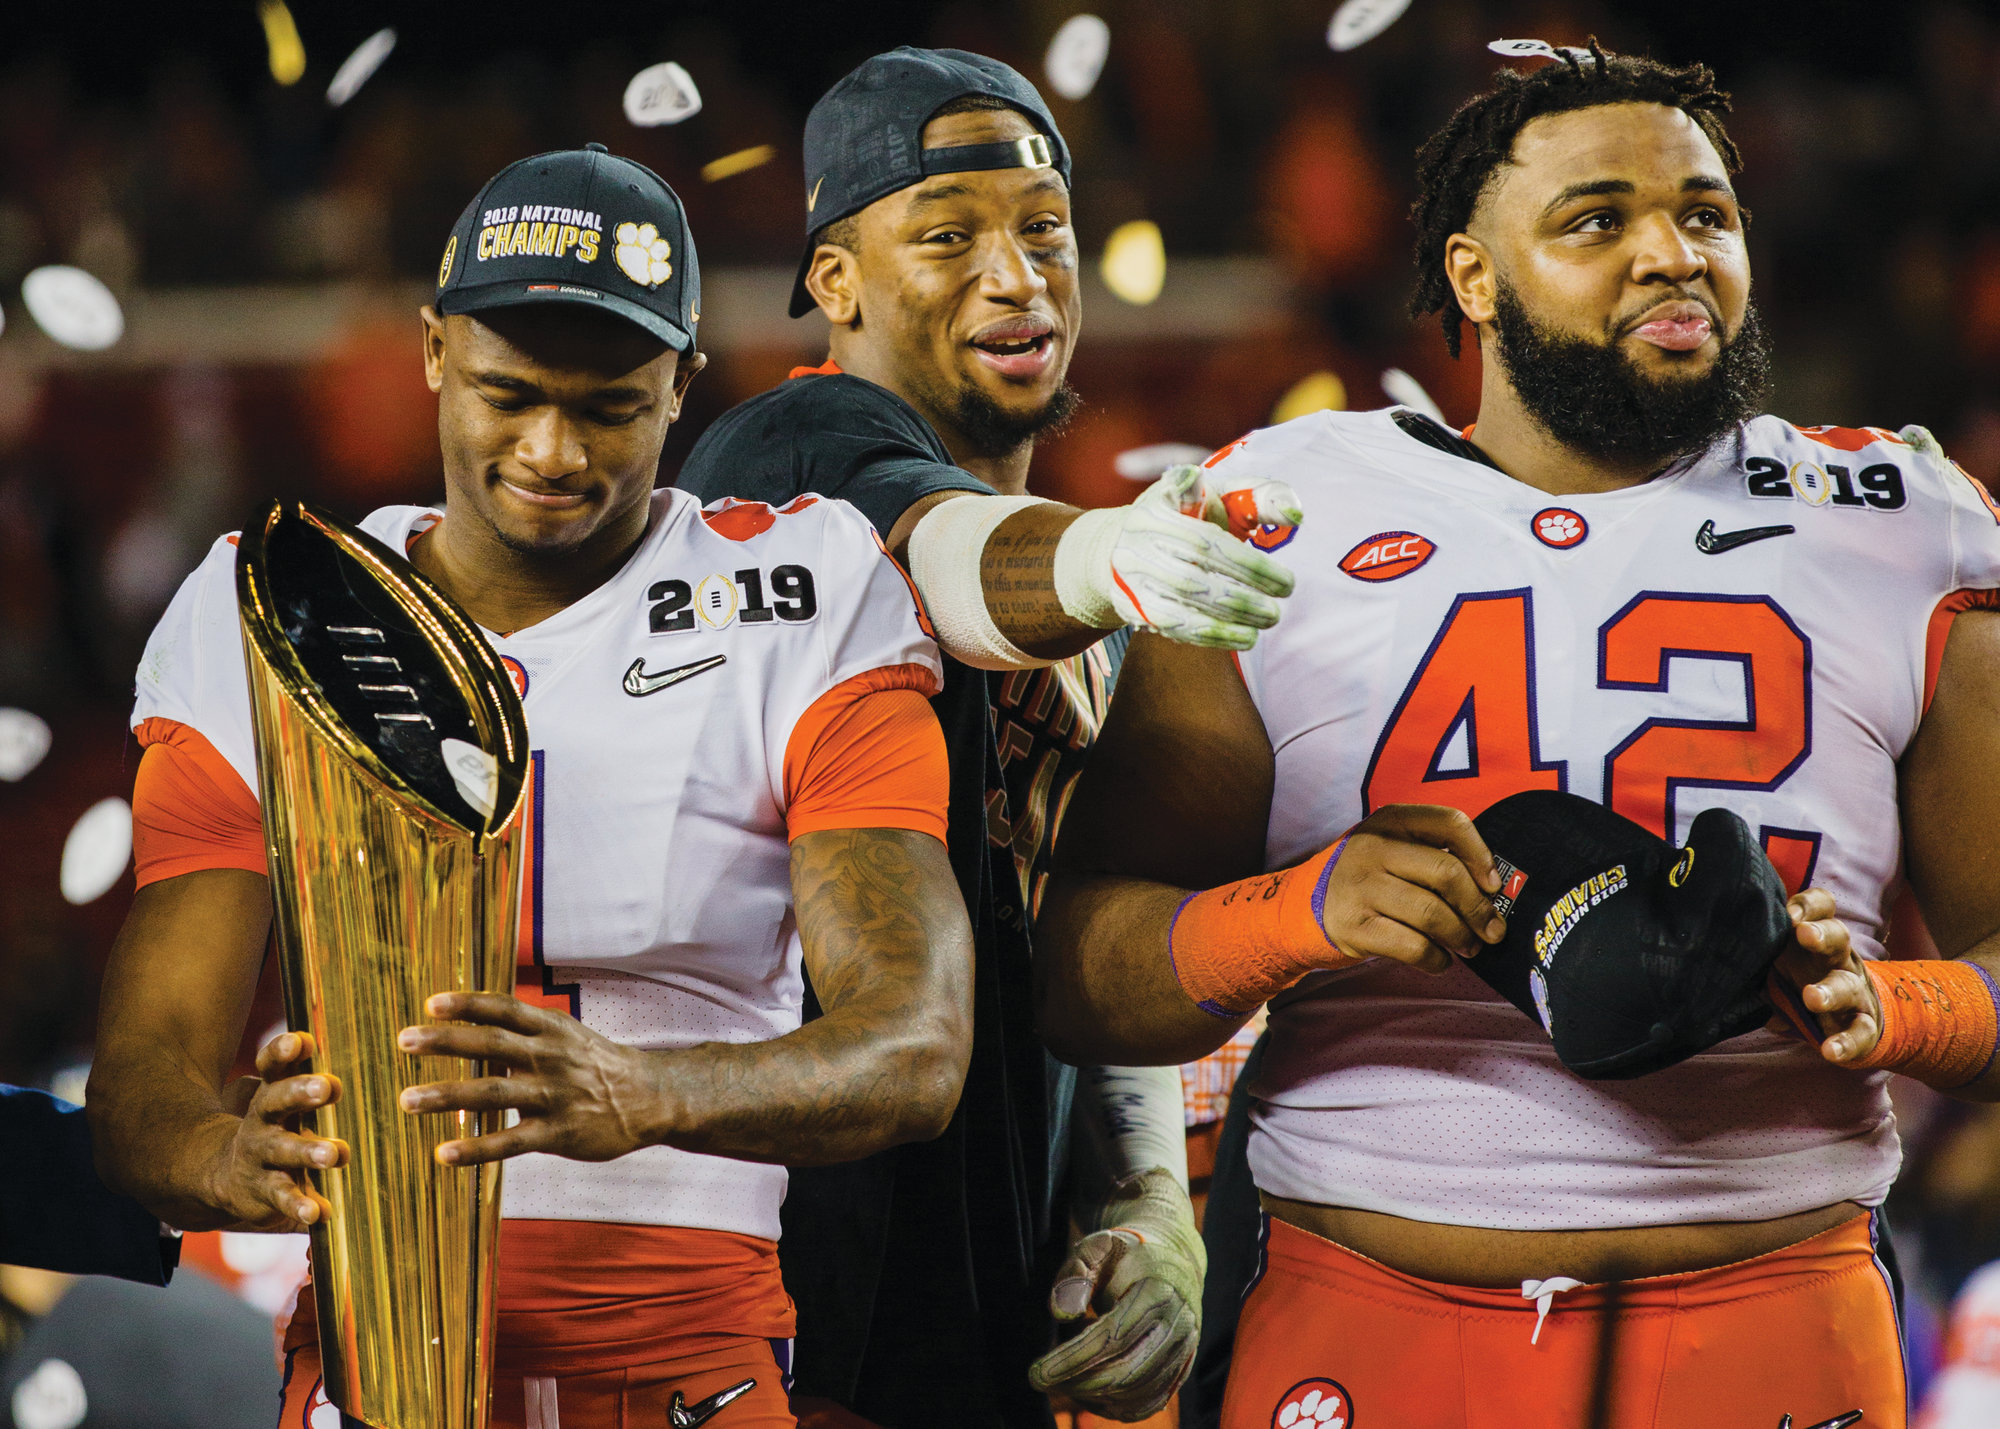 Clemson's Trayvon